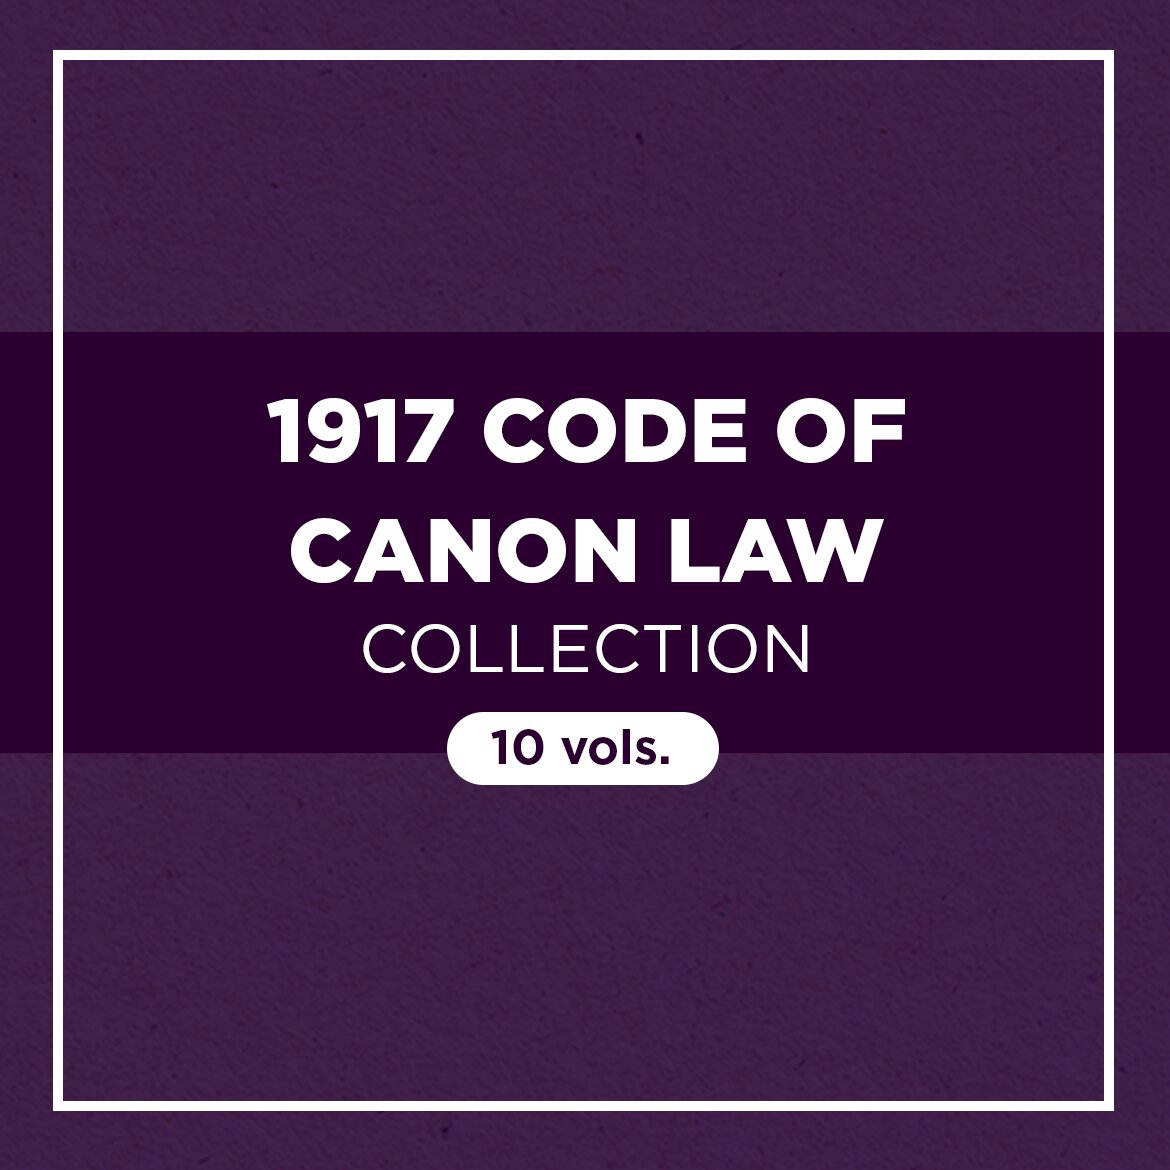 1917 Code of Canon Law Collection (10 vols.)